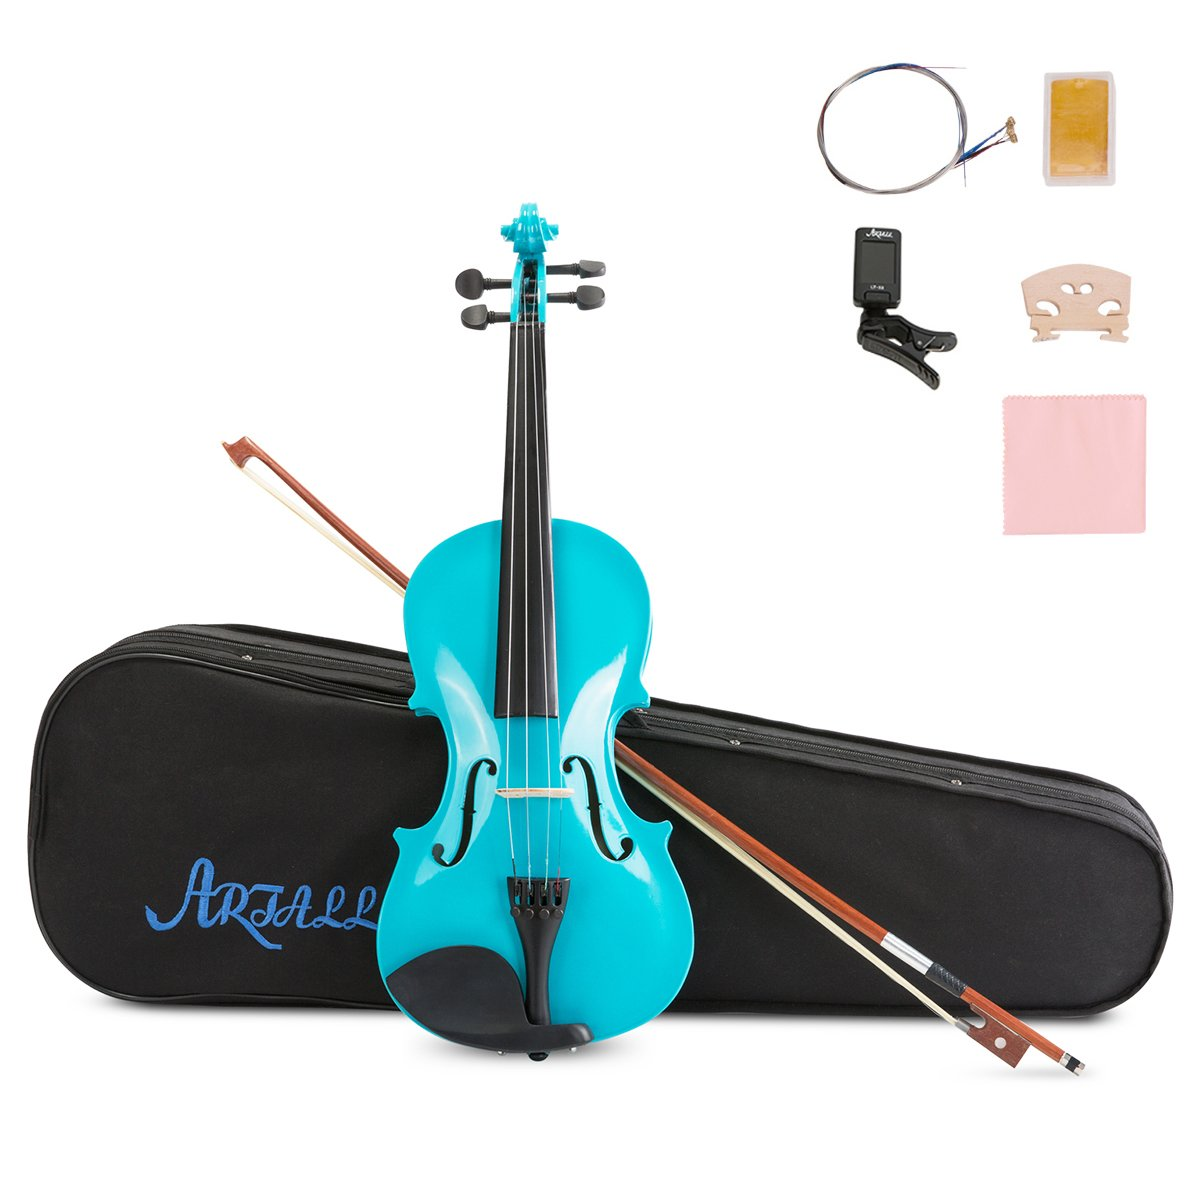 ARTALL 4/4 Handmade Student Acoustic Violin Beginner Pack with Bow, Hard Case, Chin Rest, Tuner, Spare Strings, Rosin and Bridge, Glossy Blue